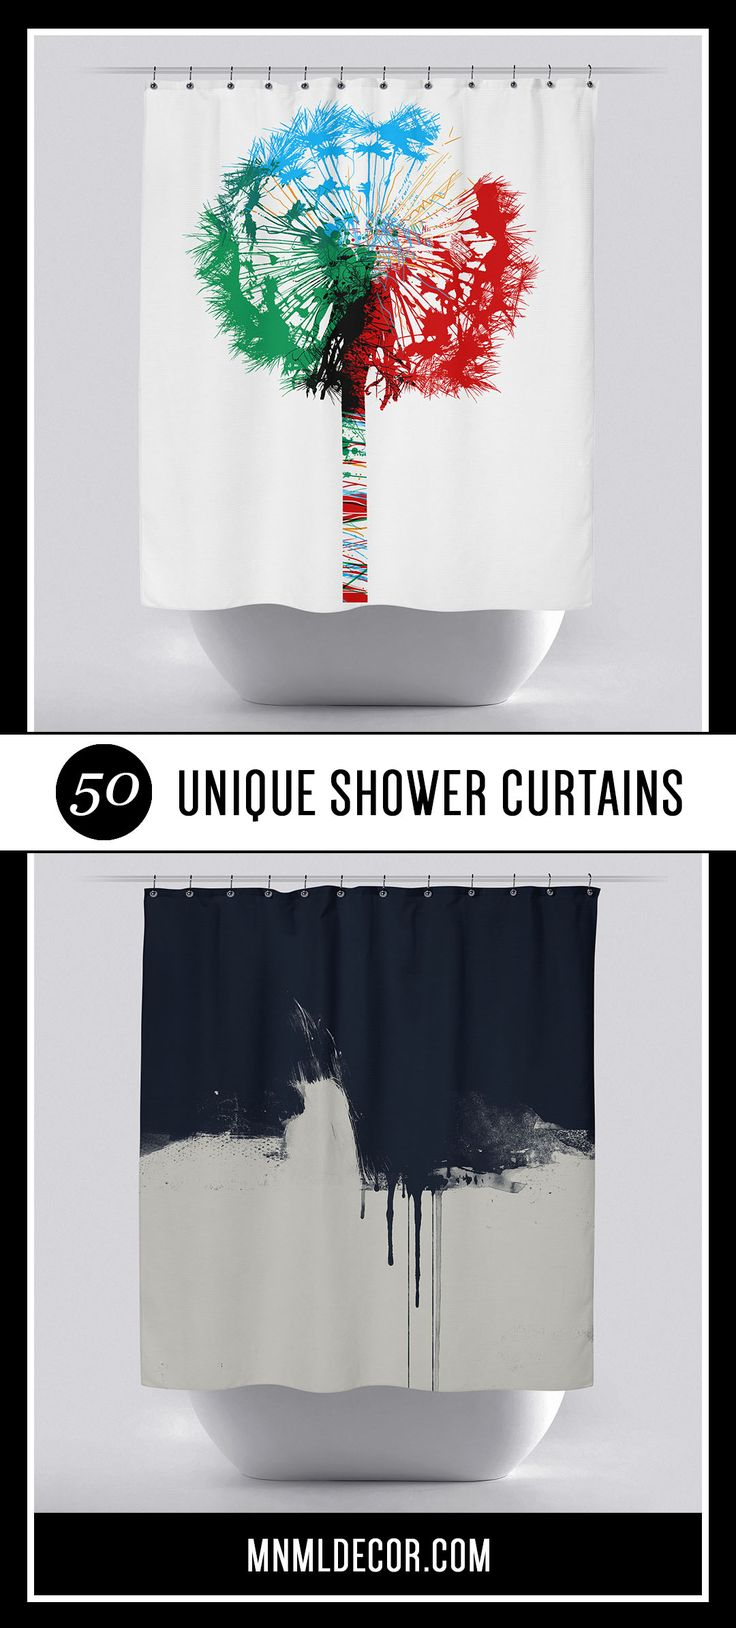 Check out our list of 50 cool & unique shower curtains at https://mnmldecor.com